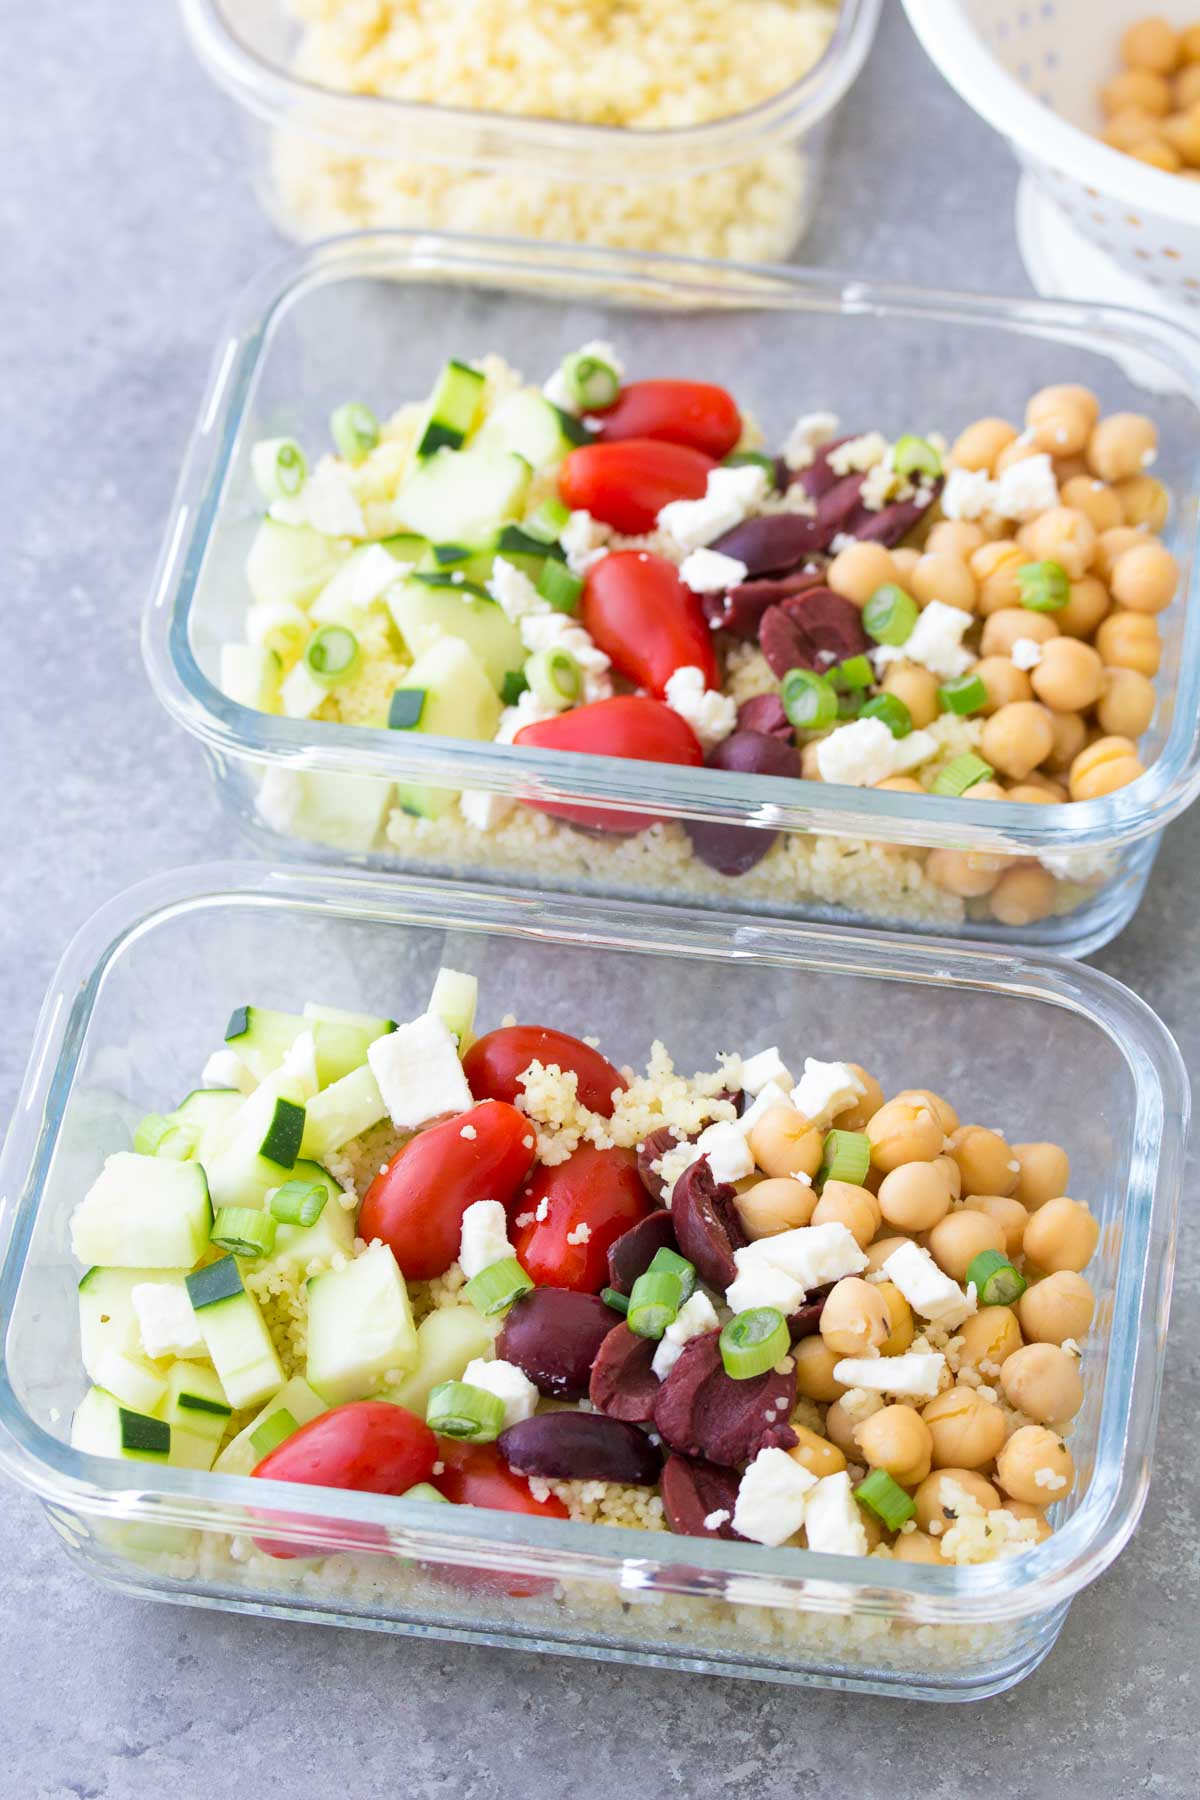 This Meal Prep Greek Chickpea Salad is a healthy, vegetarian make ahead lunch. These lunch bowls are filled with healthy vegetables and chickpeas add protein! You can also serve this as a side salad at a BBQ.